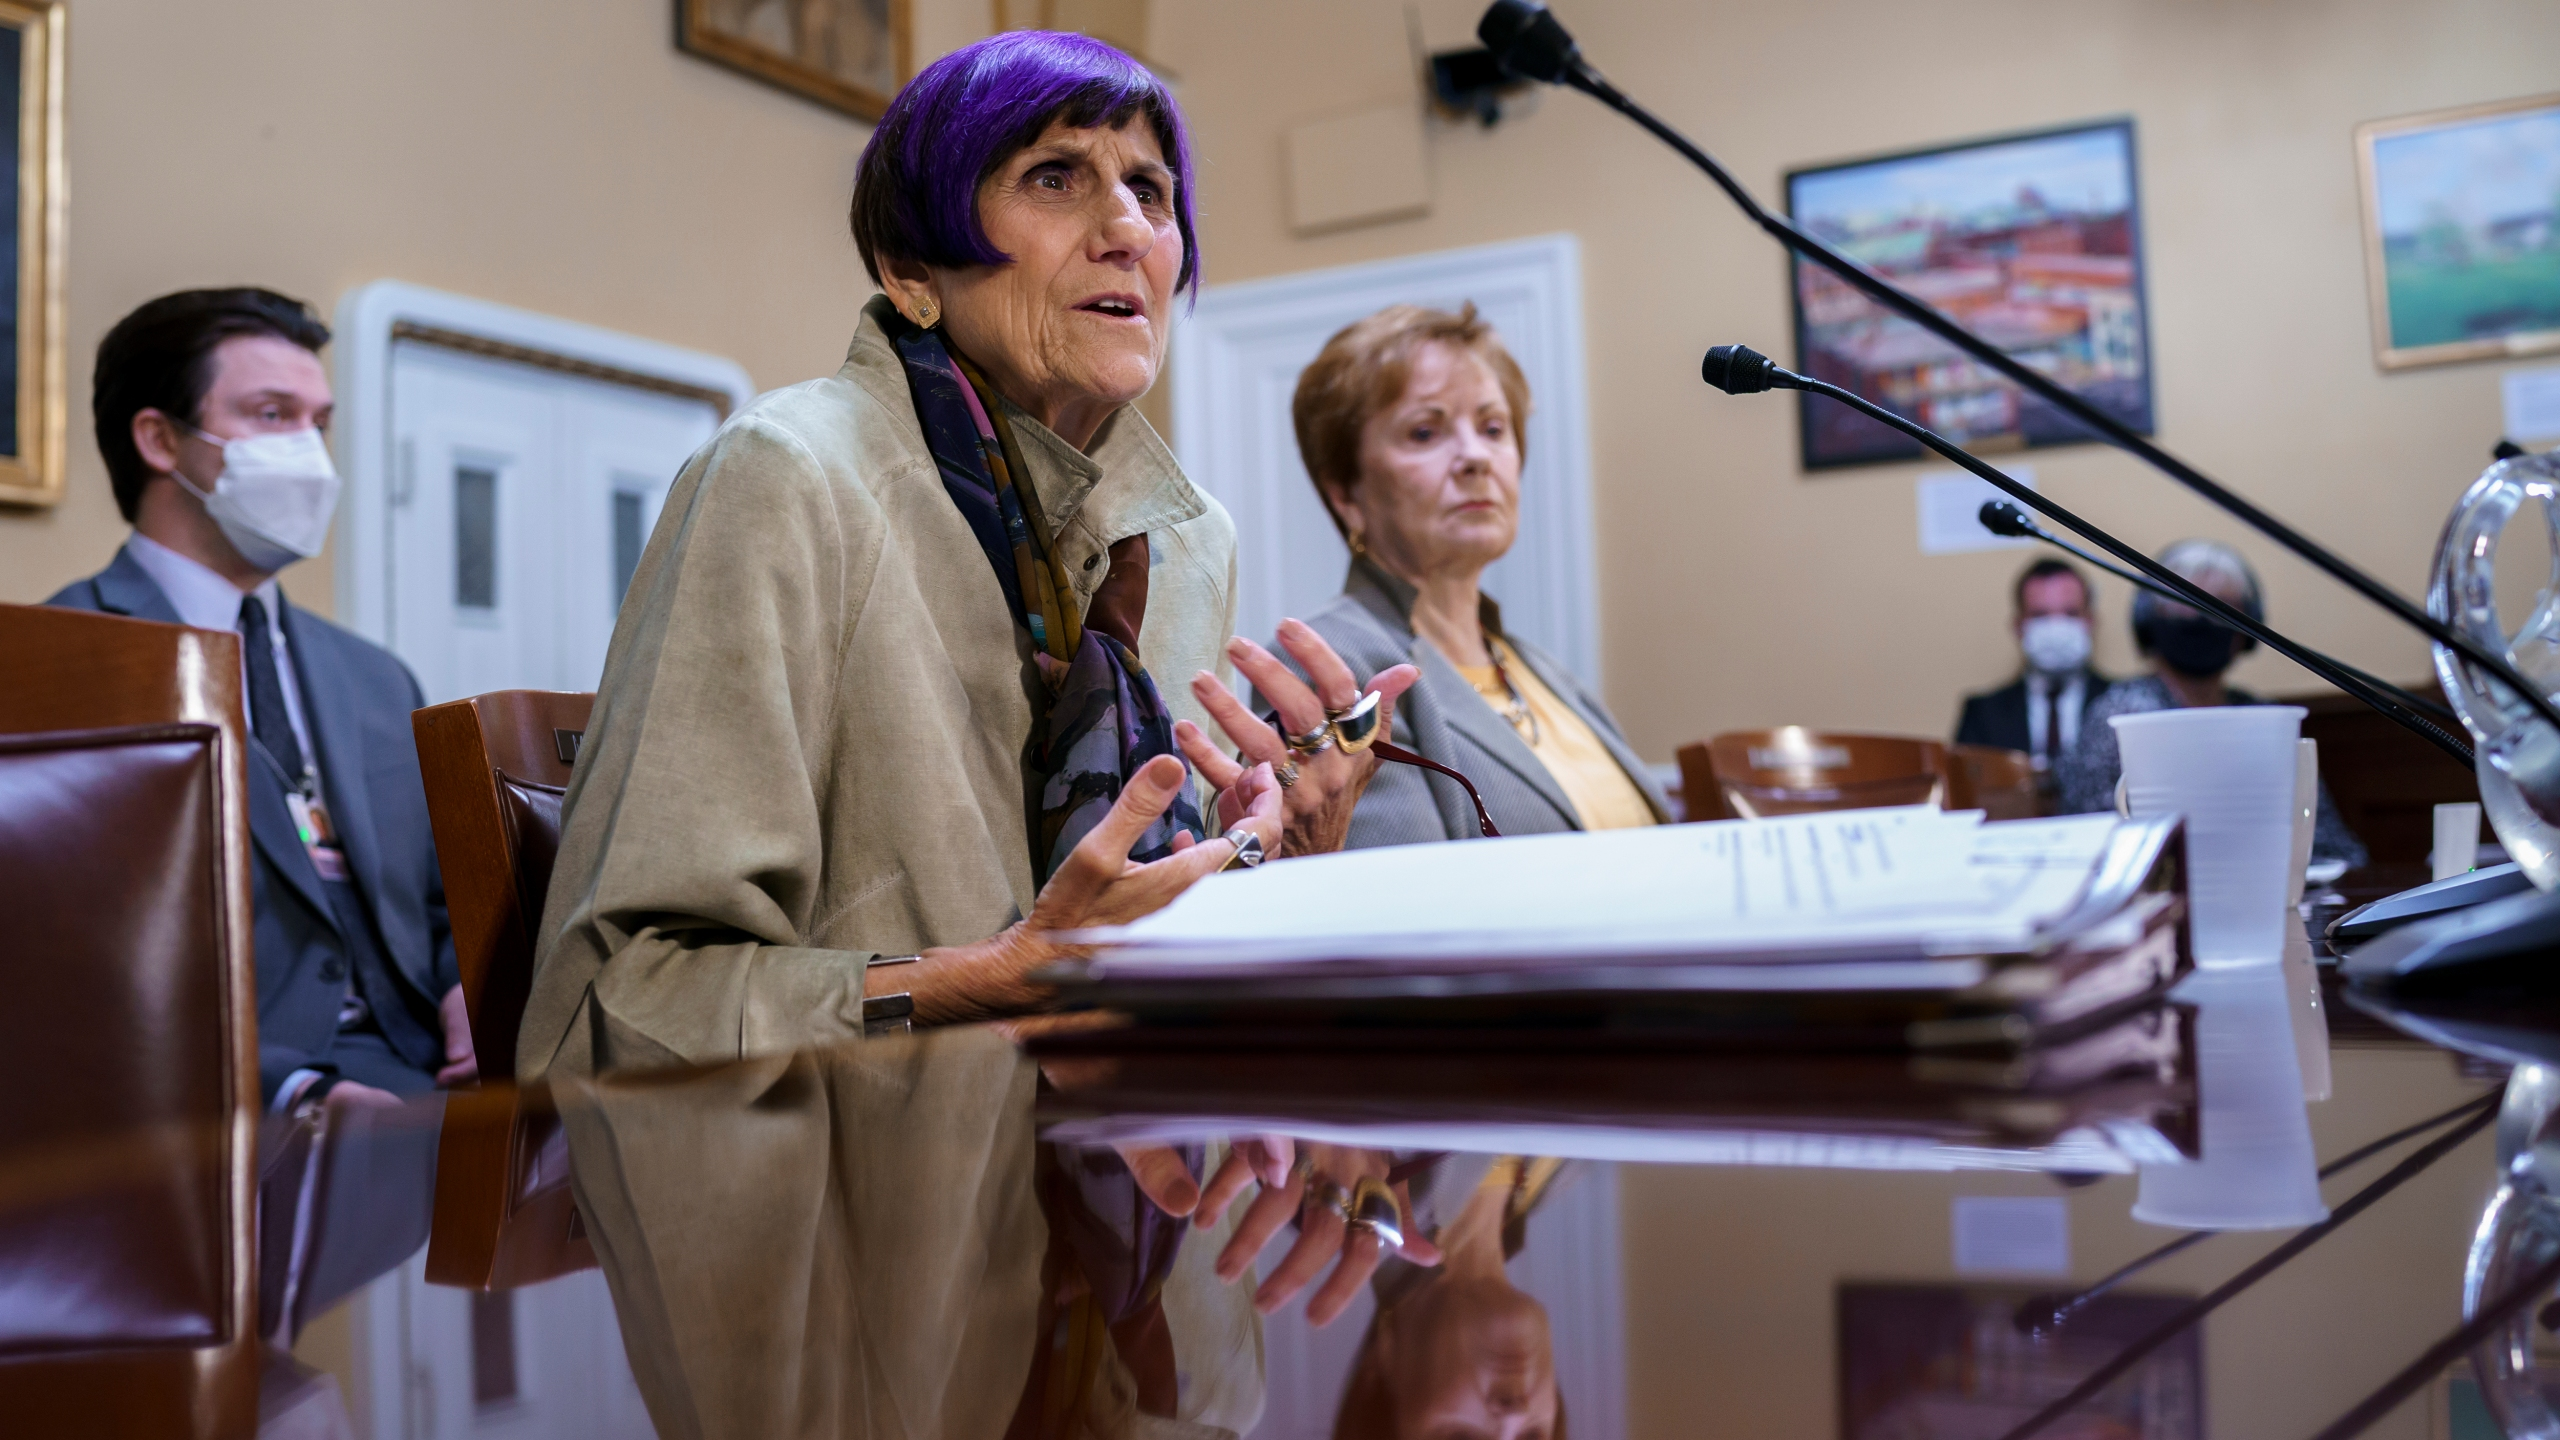 House Appropriations Committee Chair Rosa DeLauro, D-Conn., left, joined by Rep. Kay Granger, R-Texas, the ranking member of Appropriations, appear before the House Rules Committee as they field questions about the politics of the federal debt, at the Capitol in Washington on Sept. 21, 2021. (AP Photo/J. Scott Applewhite)